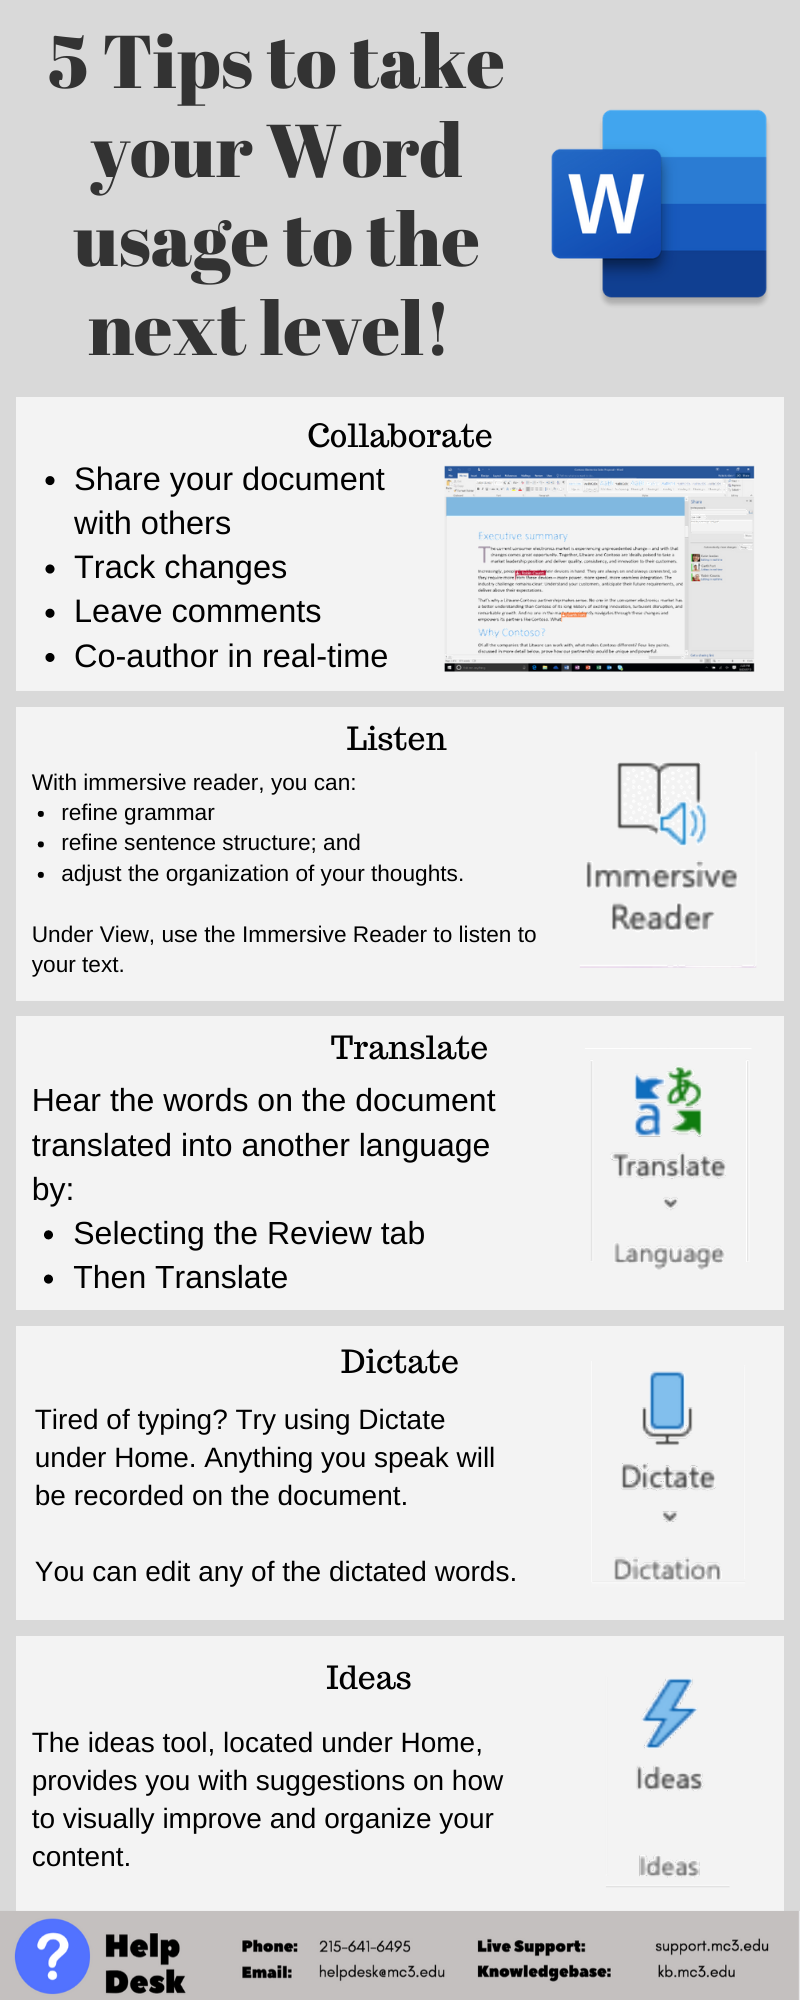 Title: Take your Word usage to the next level!  Collaborate: Share your document, track changes, leave comments, co-author in real time.  Listen: Under View, use the Immersive Reader to listen to your text. Hearing your text can help you further polish your thoughts.   Translate: Want to learn a different language or speak a different language? Use Translate under Review to learn what certain words or phrases mean in another language.   Dictate: Tired of typing? Try using Dictate under Home. Anything you speak will be recorded on the document. You always have the ability to go back and clean up the document.   Ideas: Looking to spruce up your document visually? Use Ideas under Home to access suggestions on visually how to improve and organize your content.